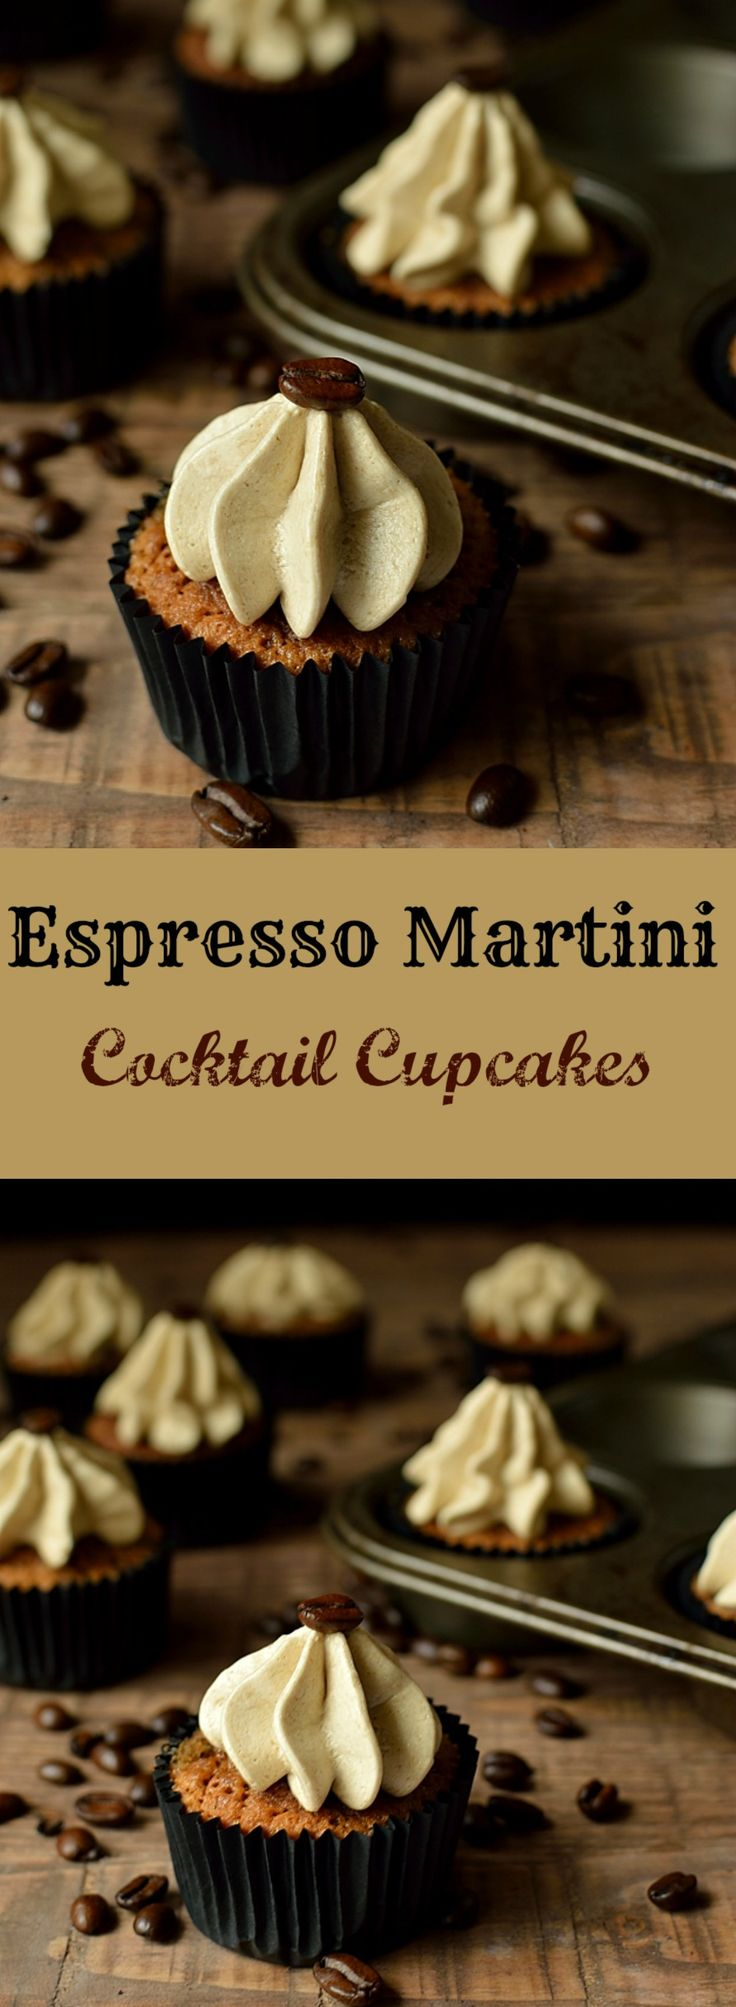 Espresso martini cocktail cupcakes, a grown up treat flavoured with Kahlua, vodka and coffee